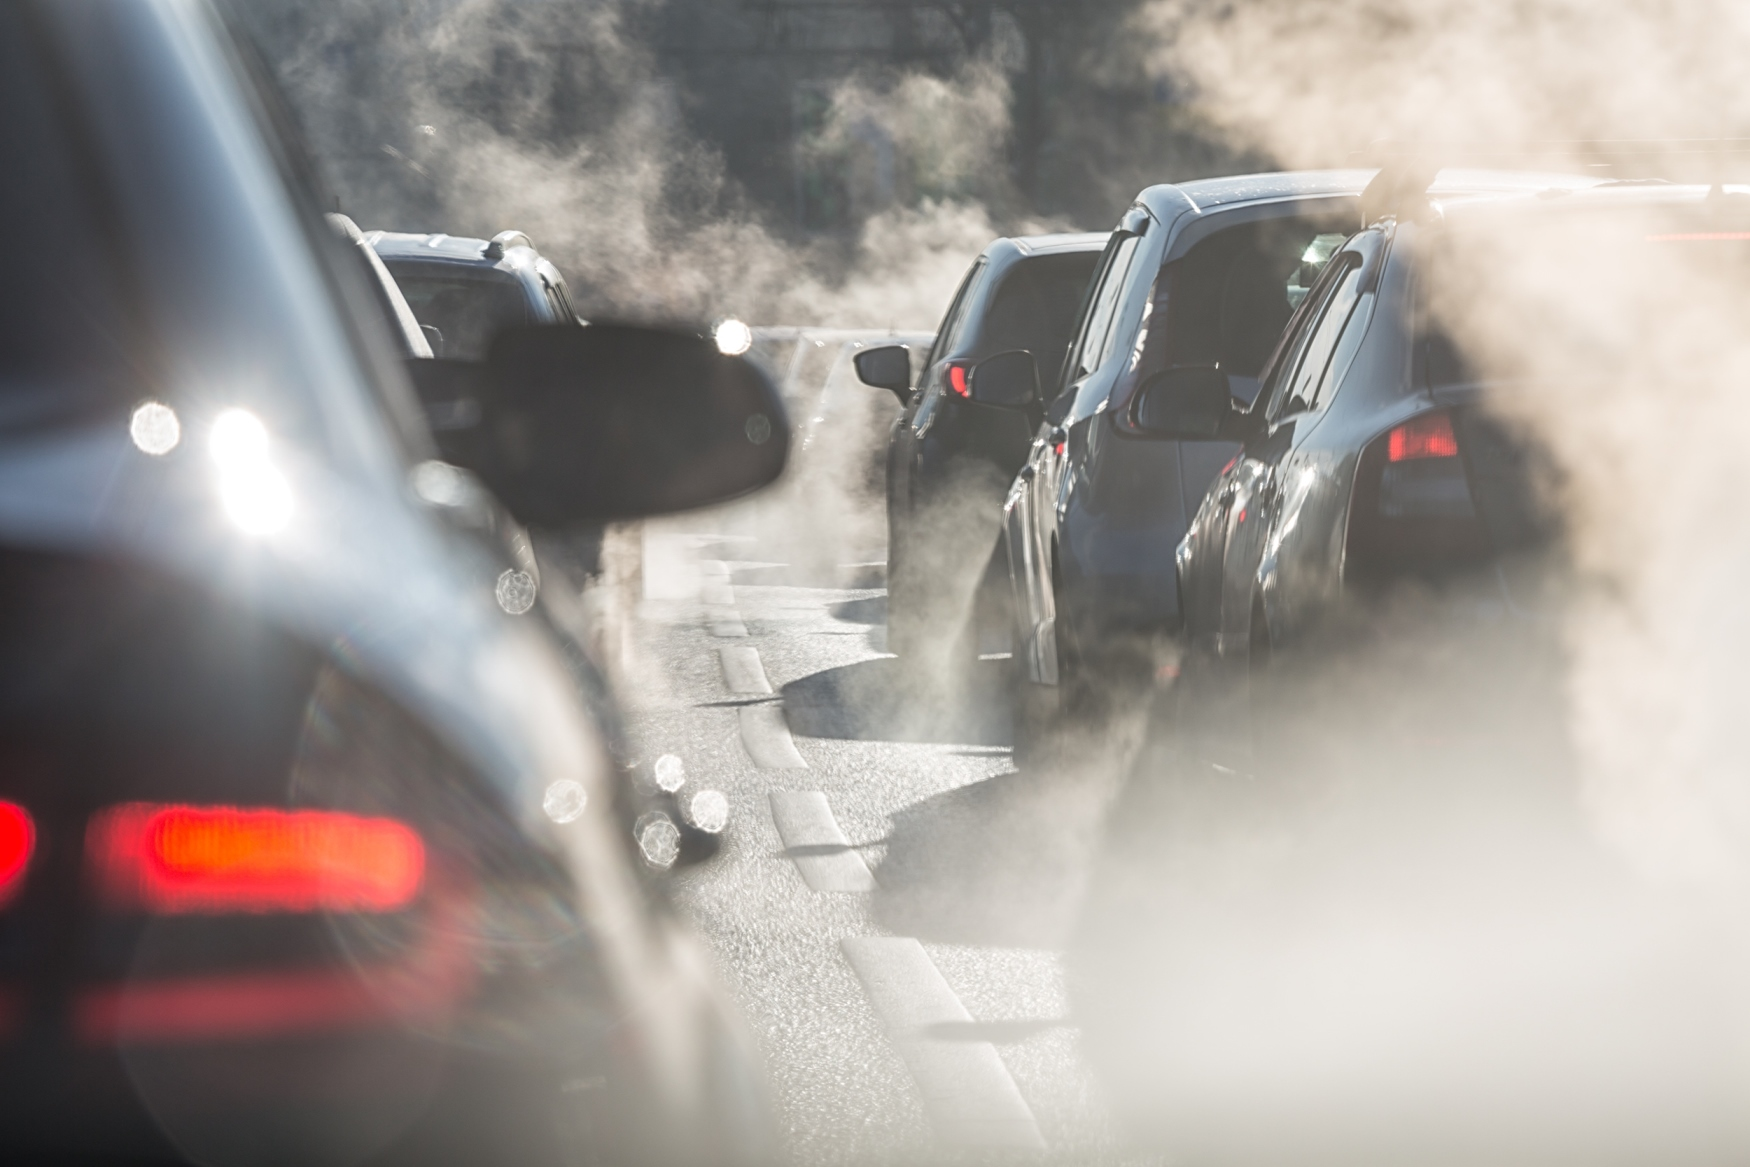 Photo of cars in traffic emitting exhaust fumes